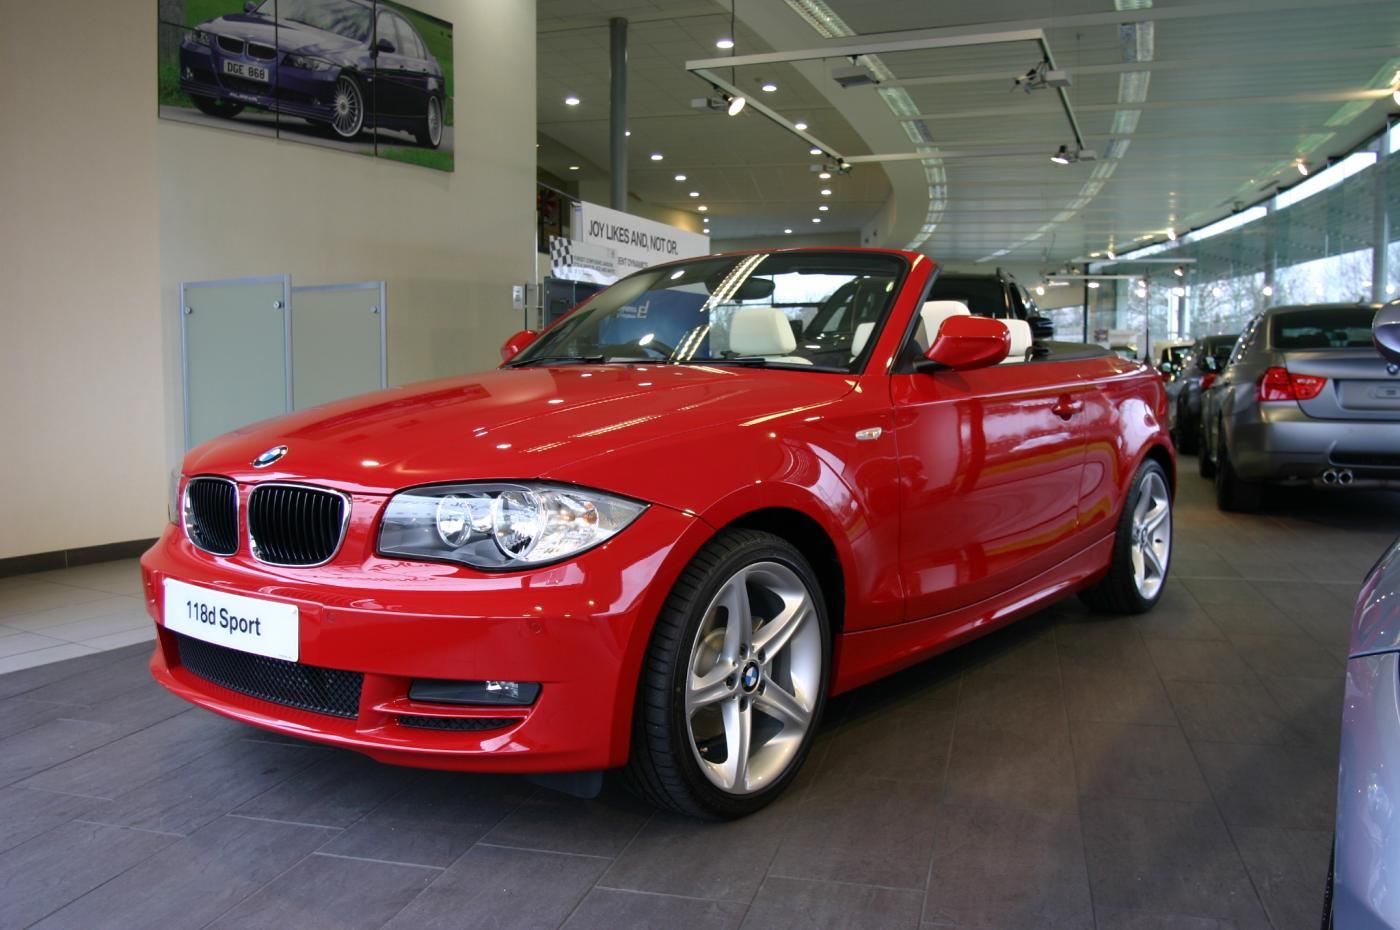 BMW 3 Series » 2008 Bmw 1 Series Convertible - BMW Car Pictures, All ...